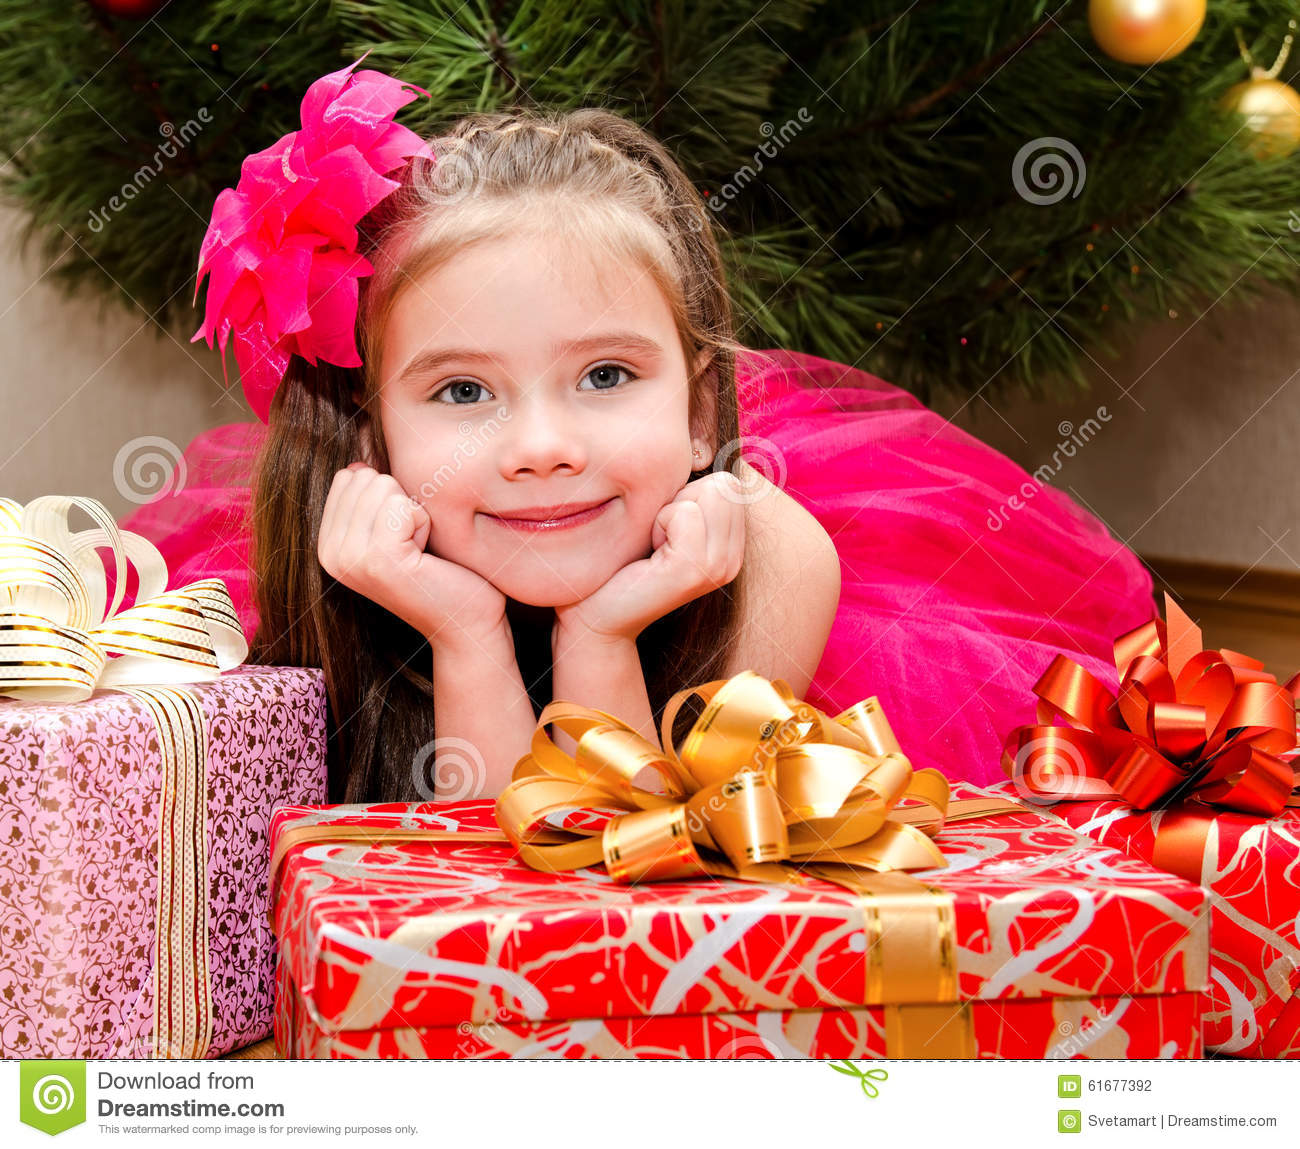 Little Girl Christmas Tree: Little Girl With Gift Boxes Near Christmas Tree Stock